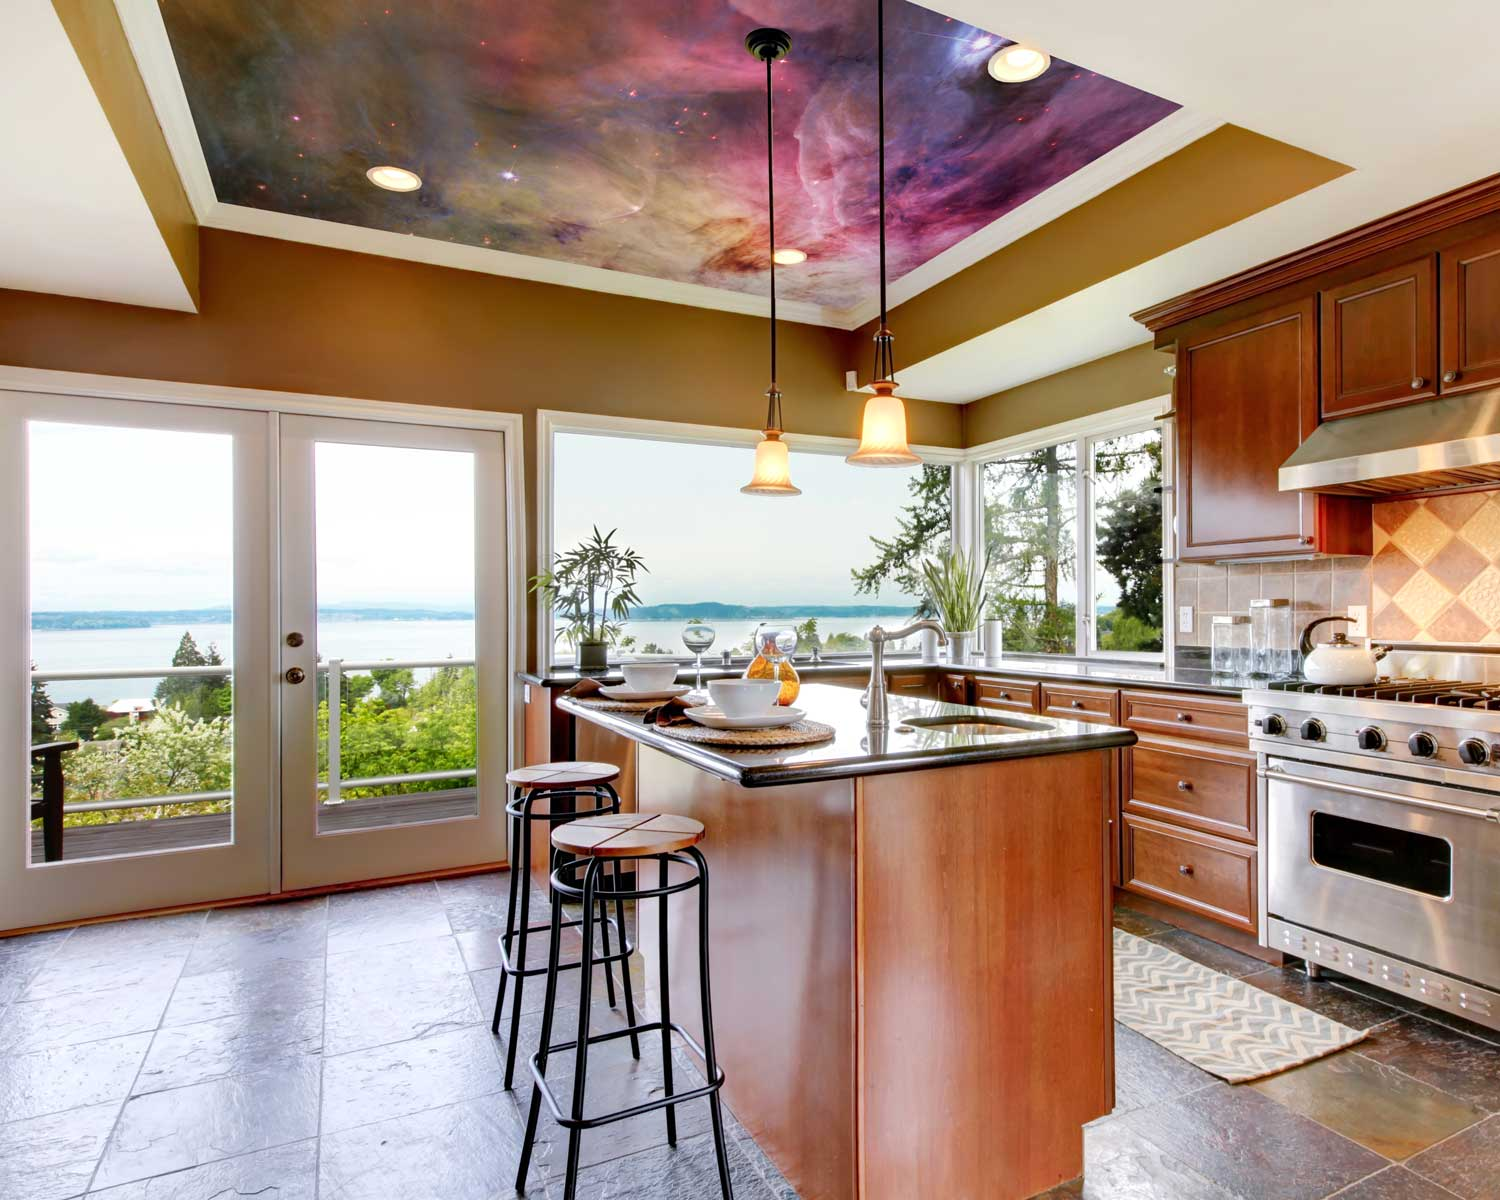 kitchen ceiling mural